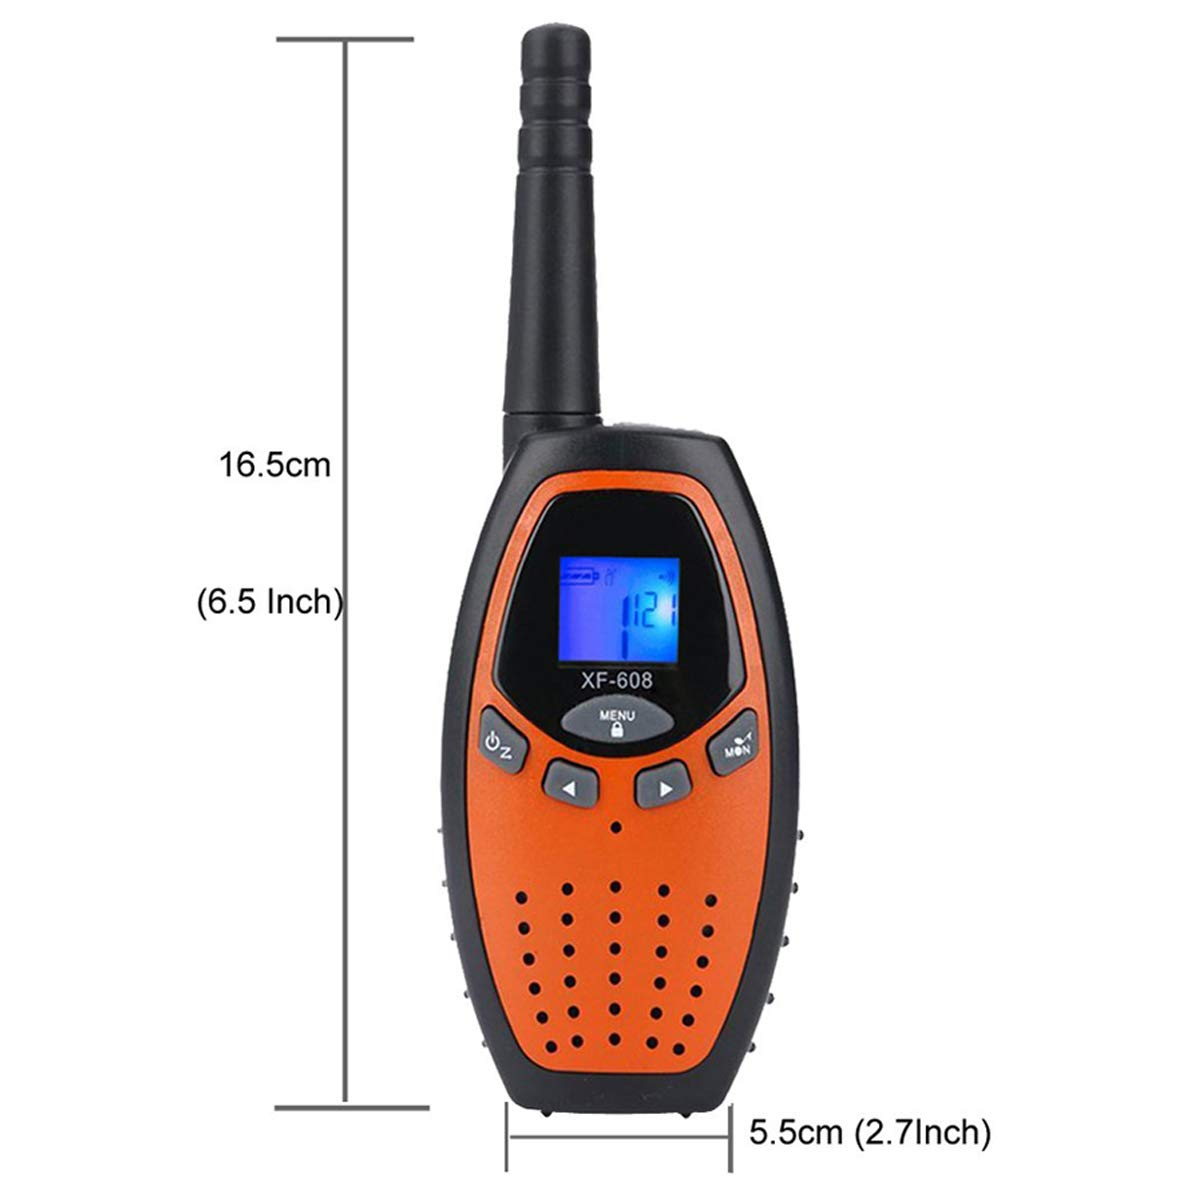 Fistone Walkie Talkies for Kids, 3 Packs 22 Channels 2 Way Radio Long Range Interphone Toys for Boy & Girls Age 3 6 7 8 9 12 Up for Outdoor Adventures, Camping, Hiking by Fistone (Image #7)